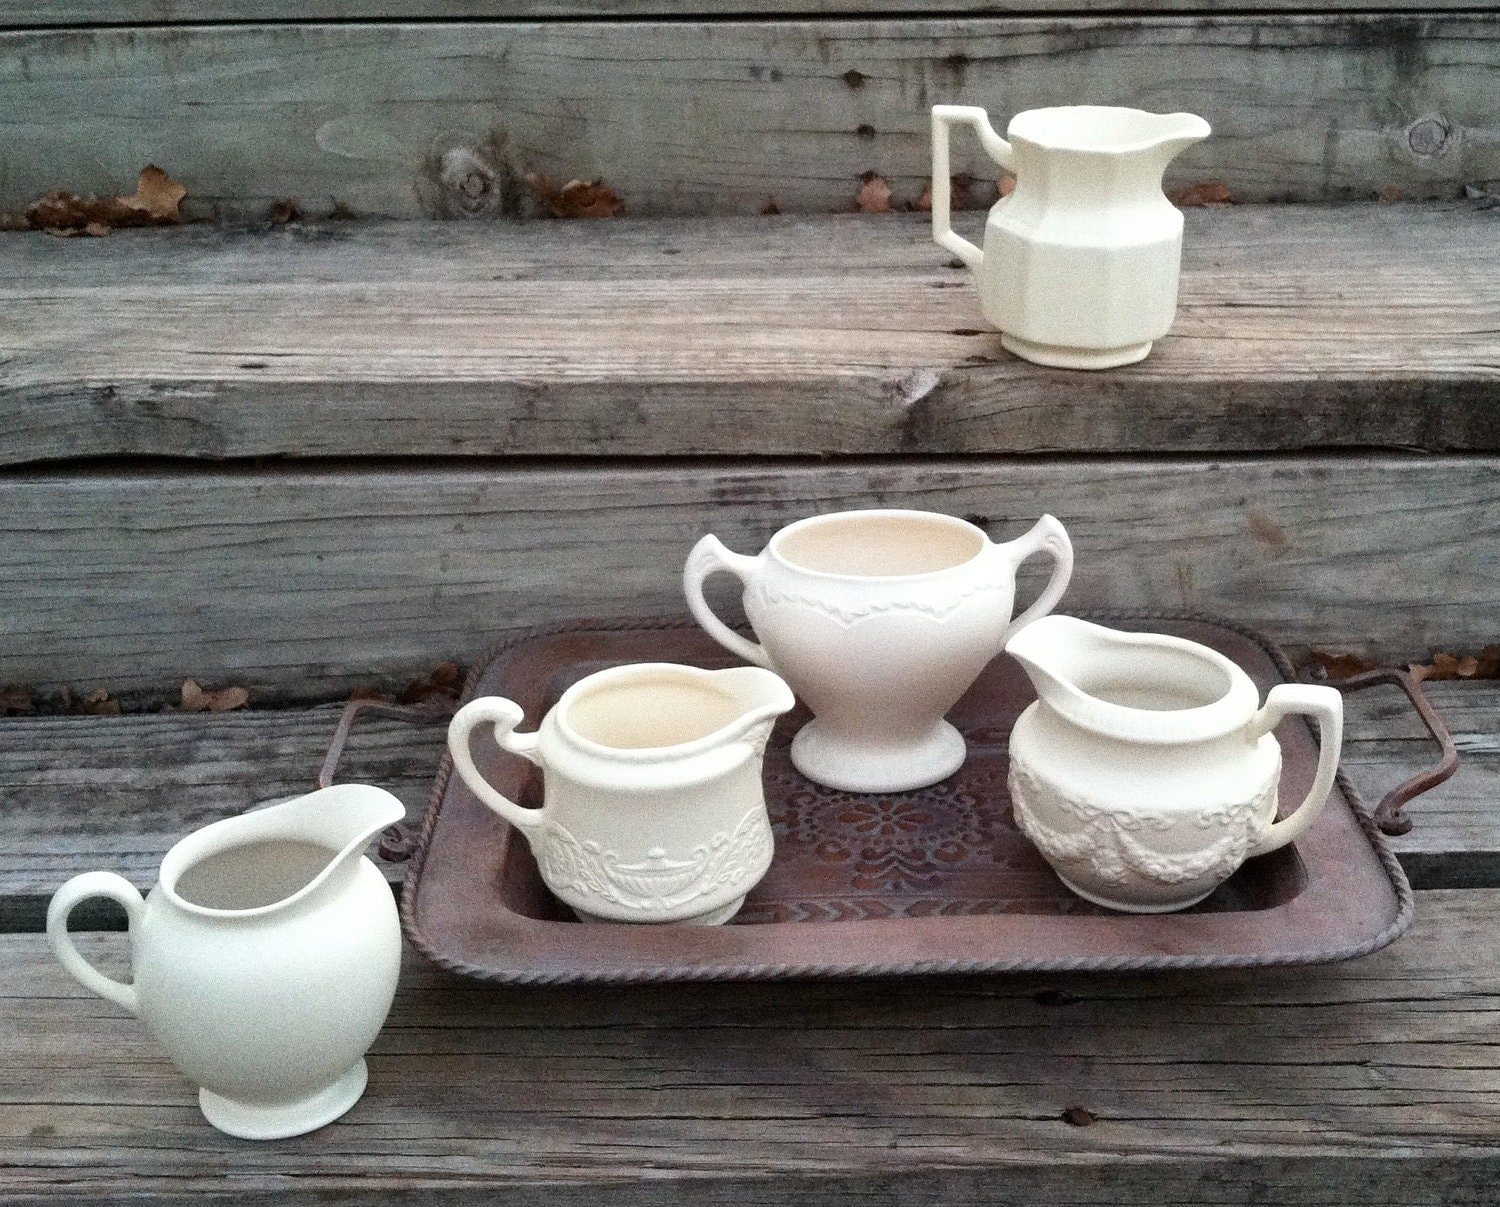 Vintage White Creamer Collection, Instant Collection, Country French Decor, Painted Cups